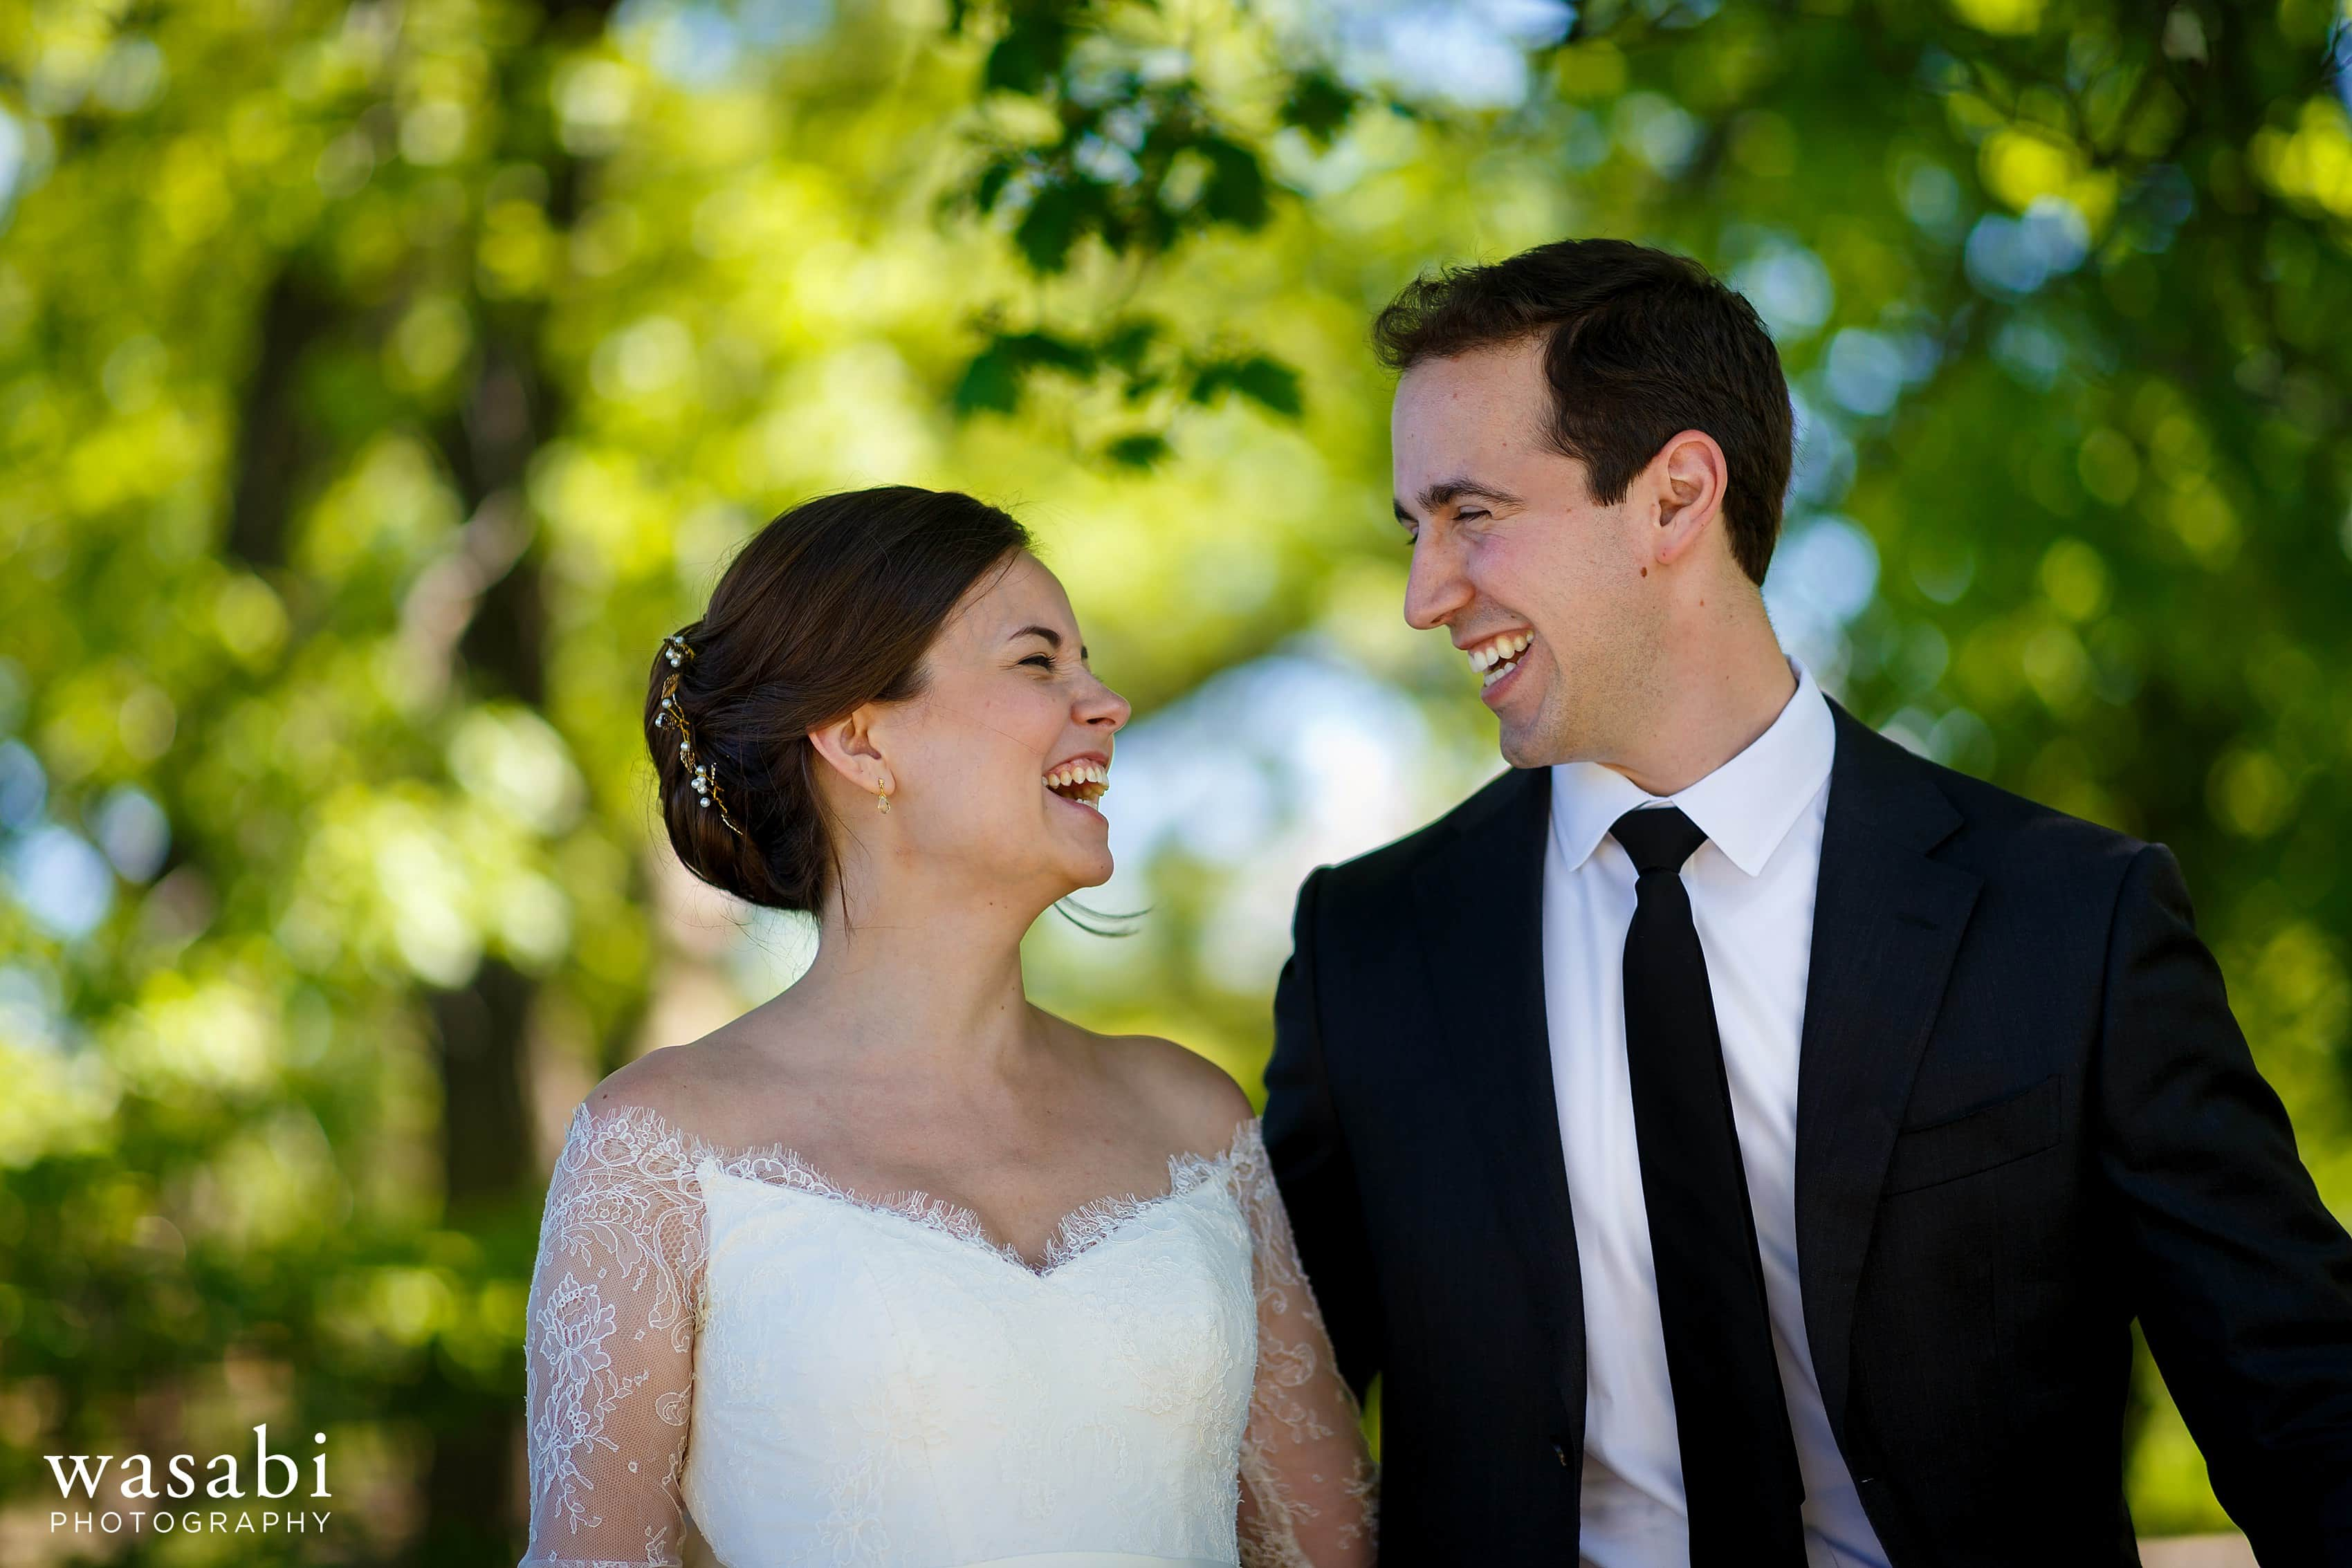 Zoe-and-Justin-walk-through-the-Alfred-Caldwell-Lily-Pool-at-Lincoln-Park-Conservancy-on-their-wedding-day-14